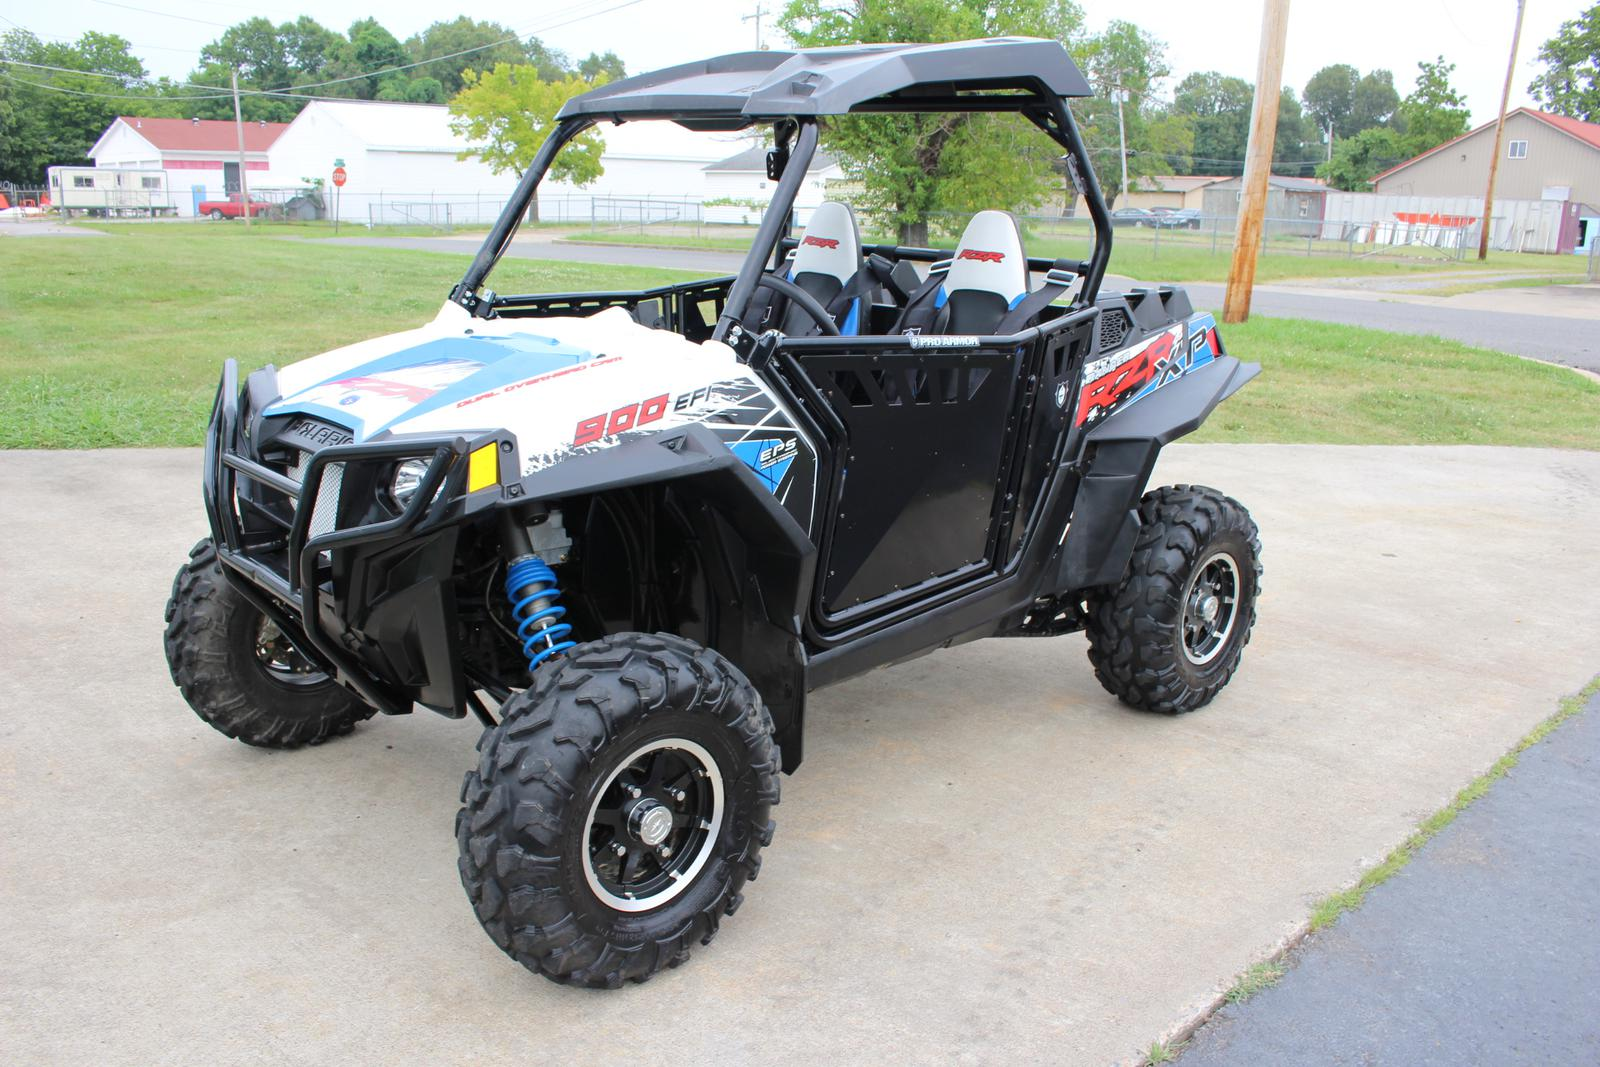 2012 Polaris Industries RZR 900 XP EPS for sale in Paducah, KY. Chase  Motorsports Inc. Paducah, KY (270) 442-4273